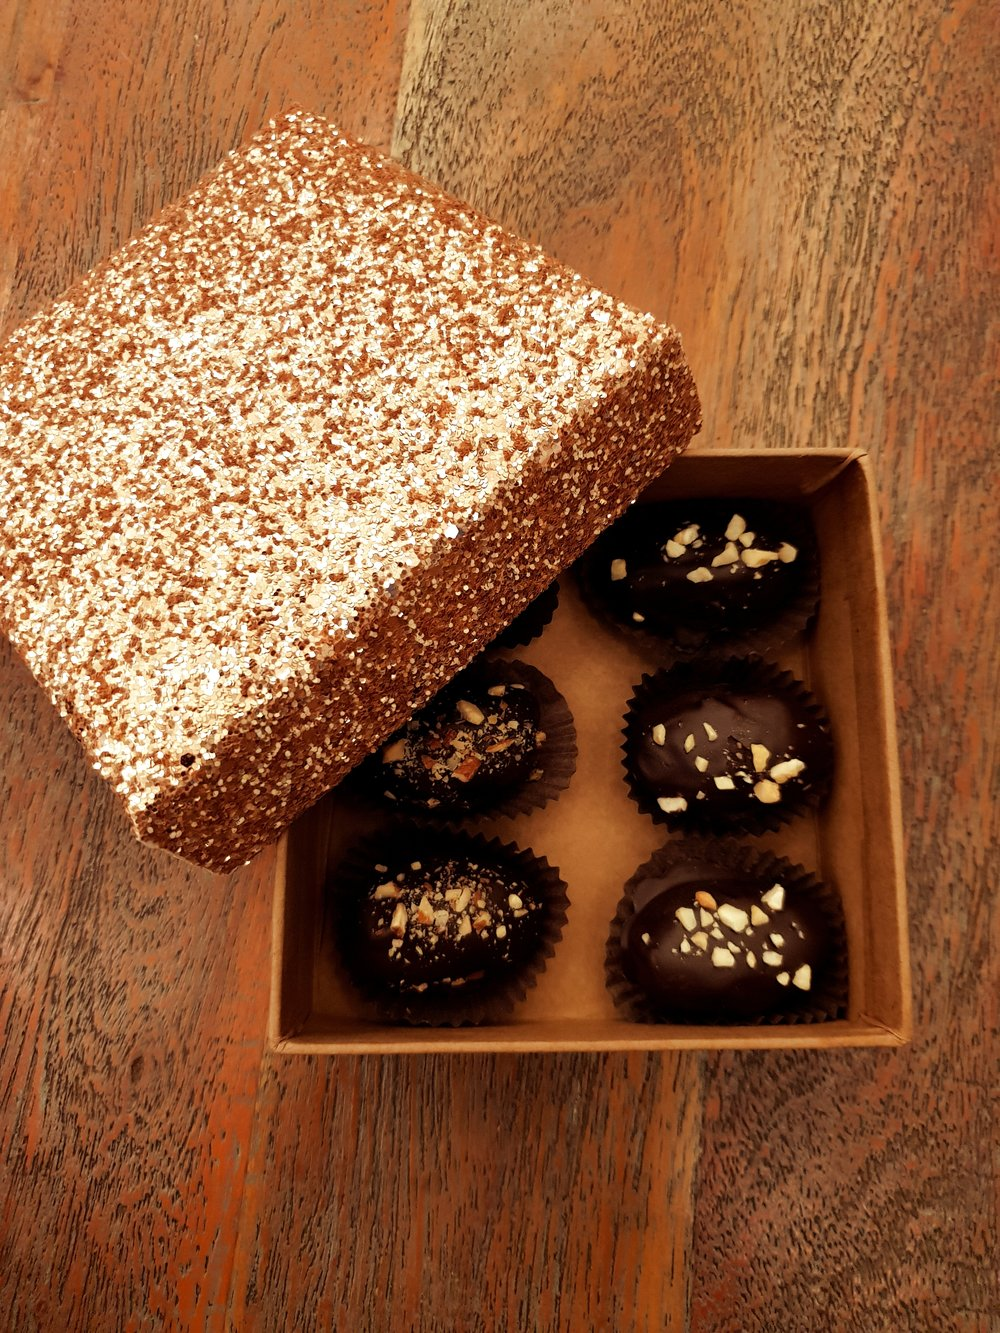 Medjoul Date Stuffed Chocolate with nut filling